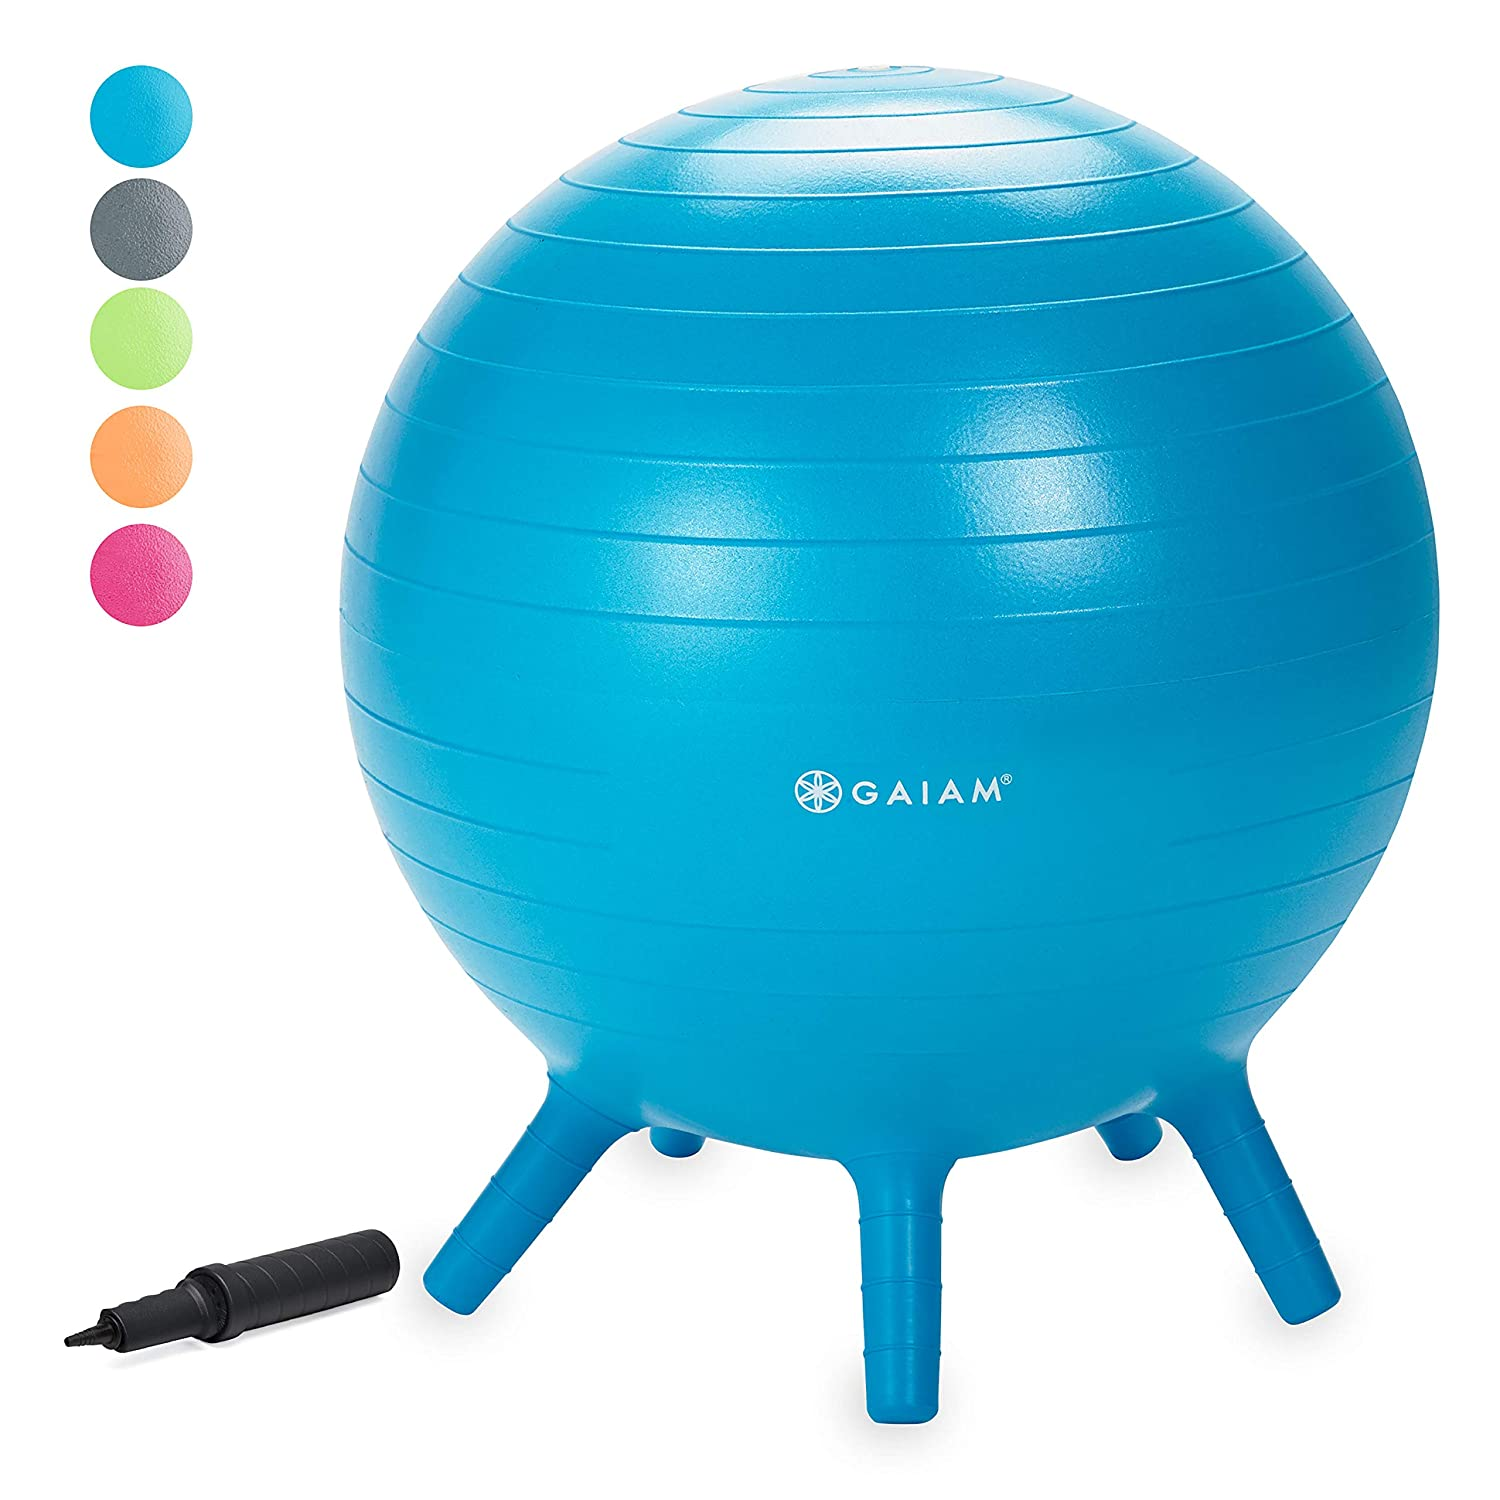 Fabulous Gaiam Kids Stay N Play Childrens Balance Ball Flexible School Chair Active Classroom Desk Seating With Stay Put Stability Legs Includes Air Pump Caraccident5 Cool Chair Designs And Ideas Caraccident5Info